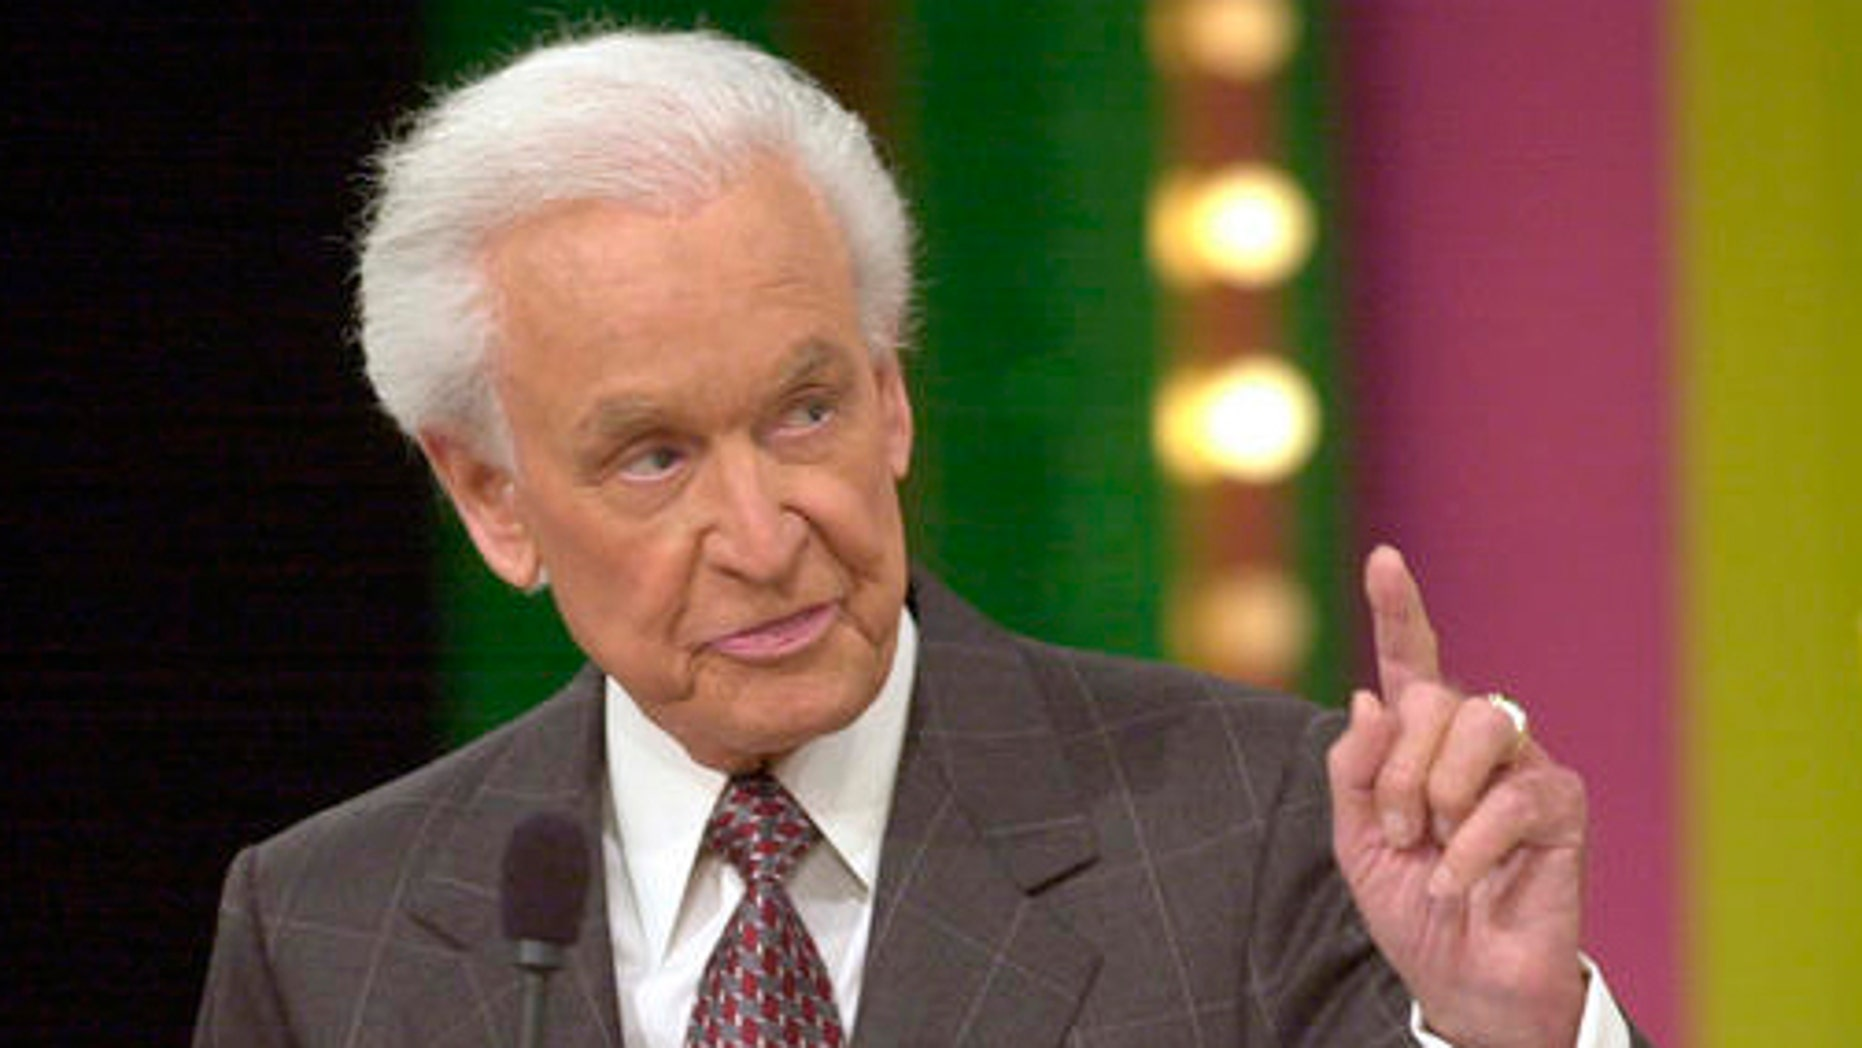 """**FILE**Bob Barker, 79, host of game show """"The Price is Right,"""" gestures during taping of a show on, Jan. 15, 2003, in Los Angeles. Barker has agreed to continue as host of """"The Price Is Right"""" for a record 34th season, CBS announced Monday, Jan. 3, 2005.(AP Photo/Nick Ut)"""